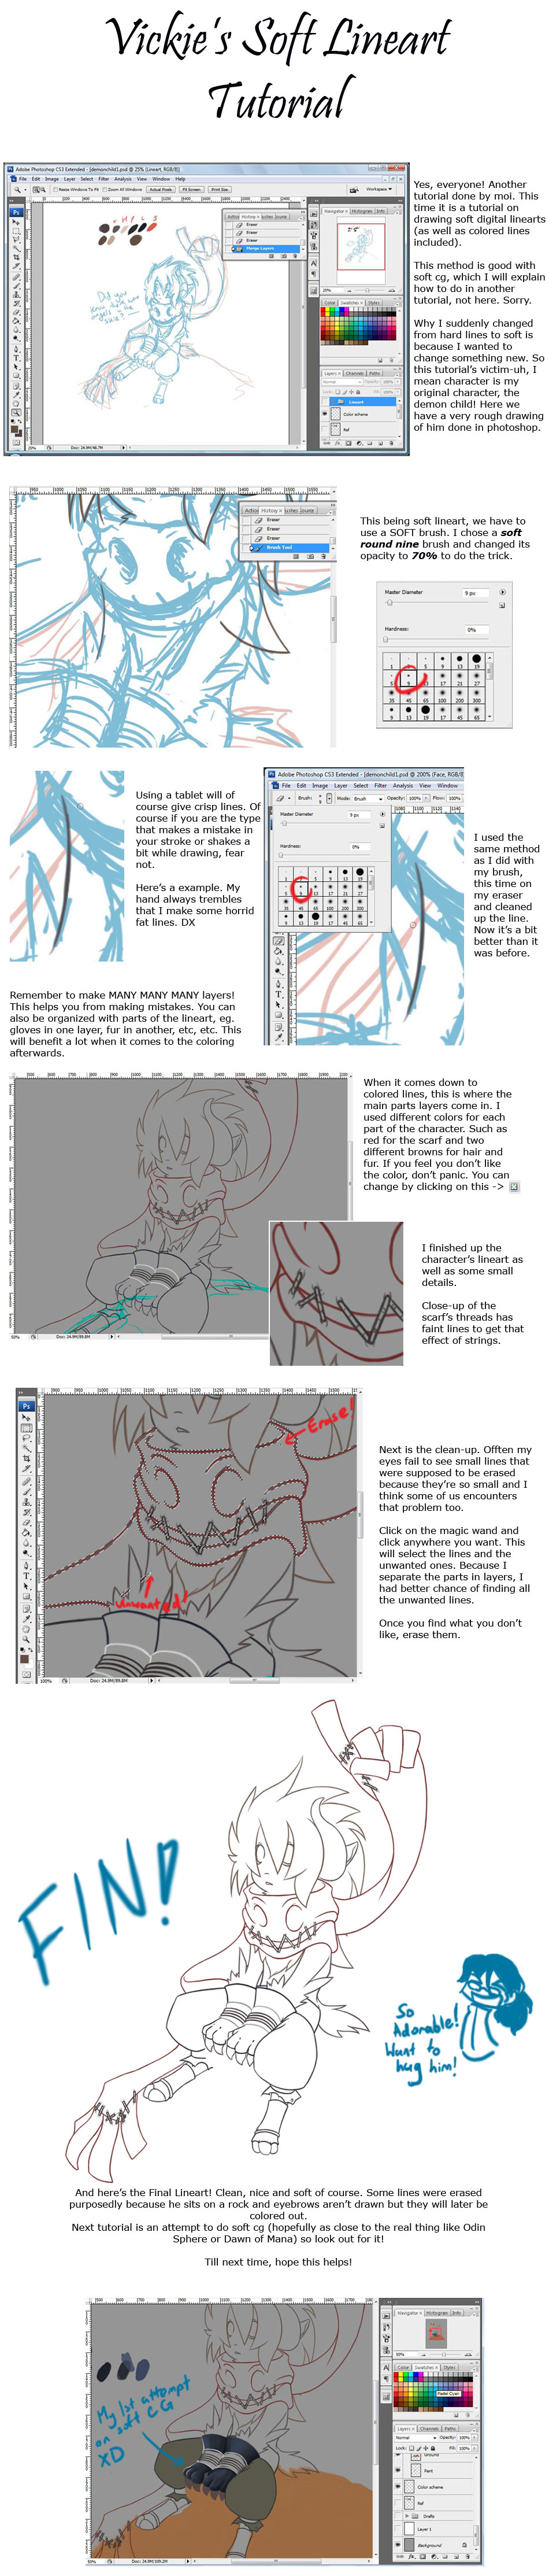 Soft Lineart Tutorial by vickie-believe